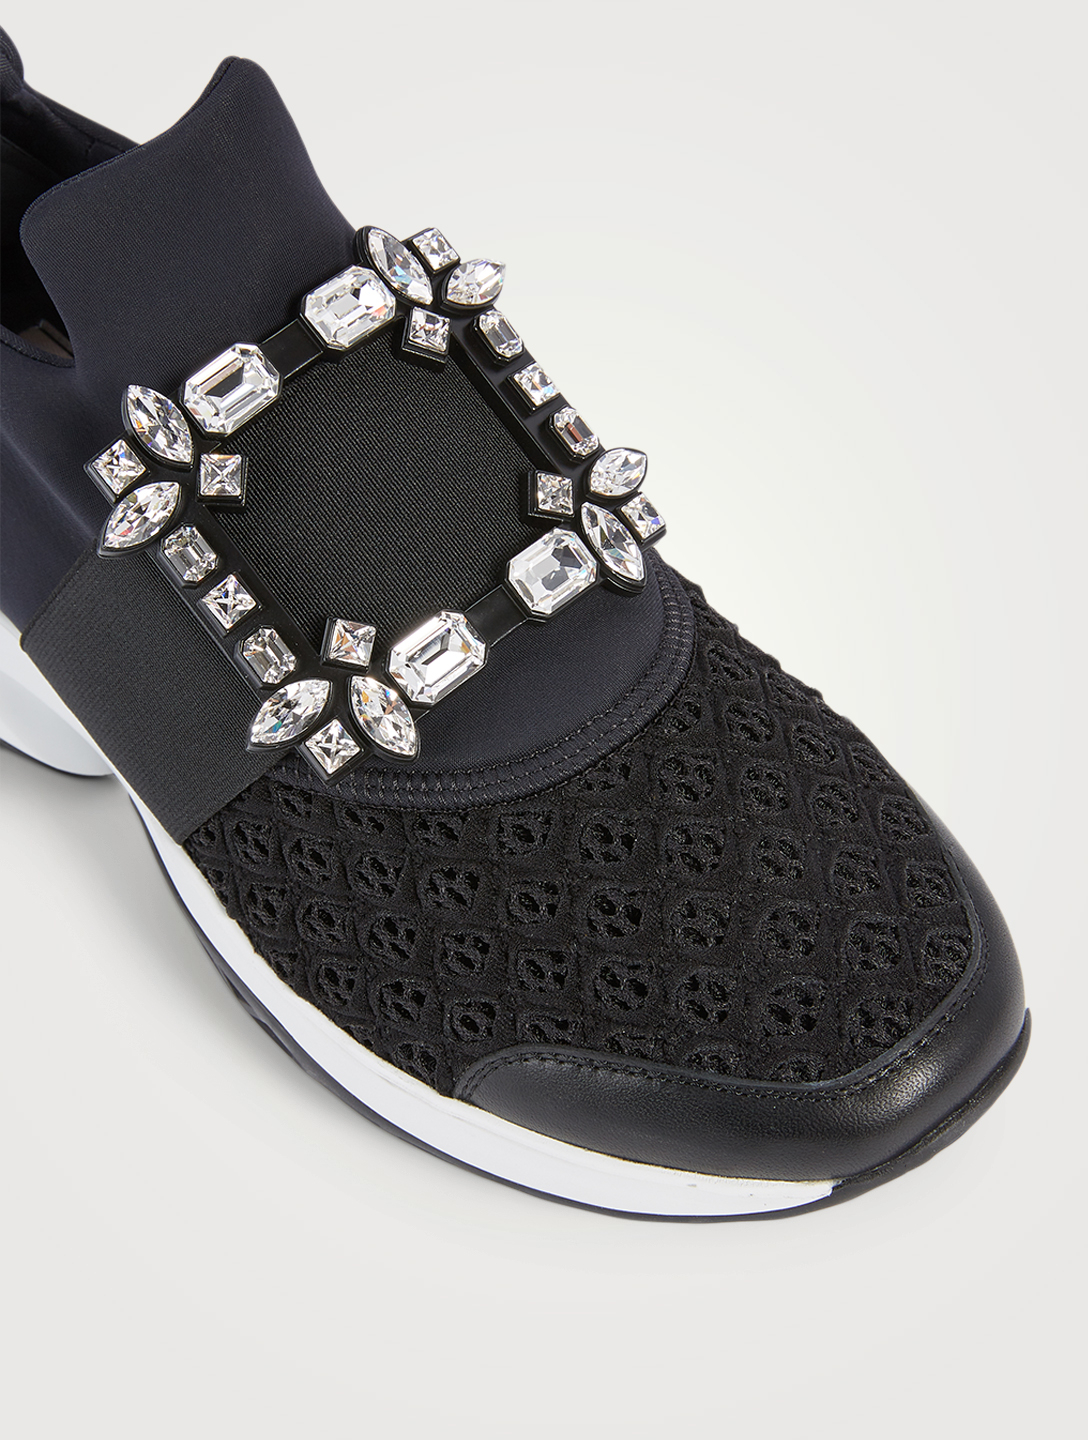 ROGER VIVIER Viv' Run Strass Mesh Neoprene Sneakers Women's Black